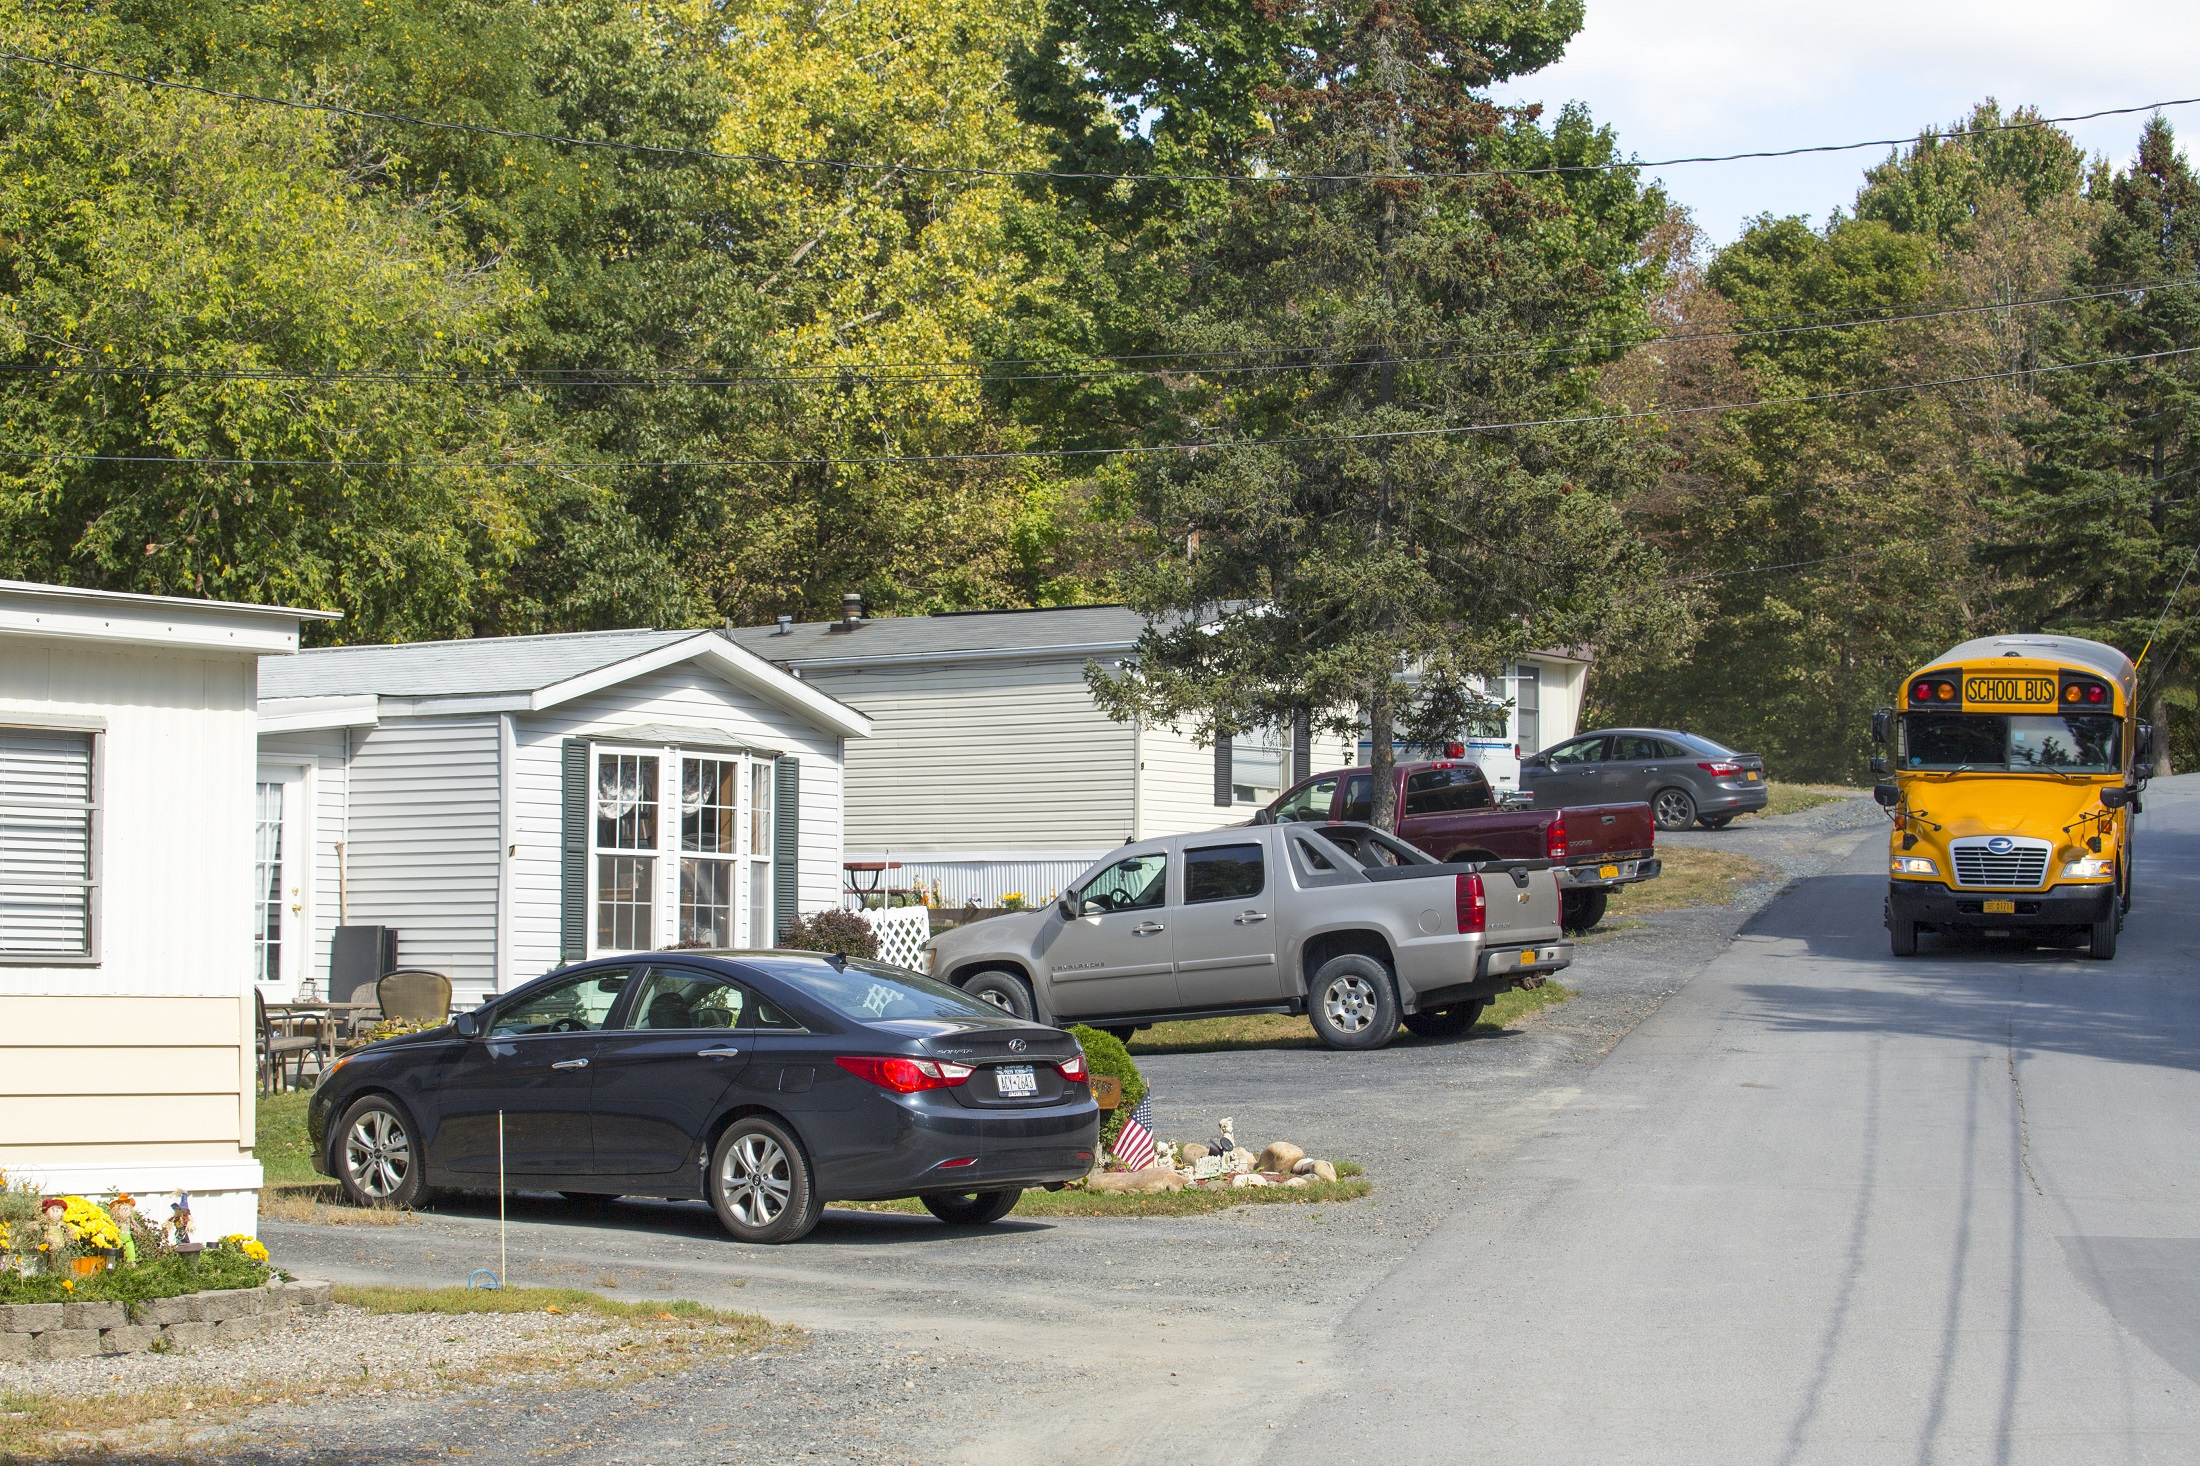 Teton Management Corp Purchases Mobile Home Community In New York's Capital District